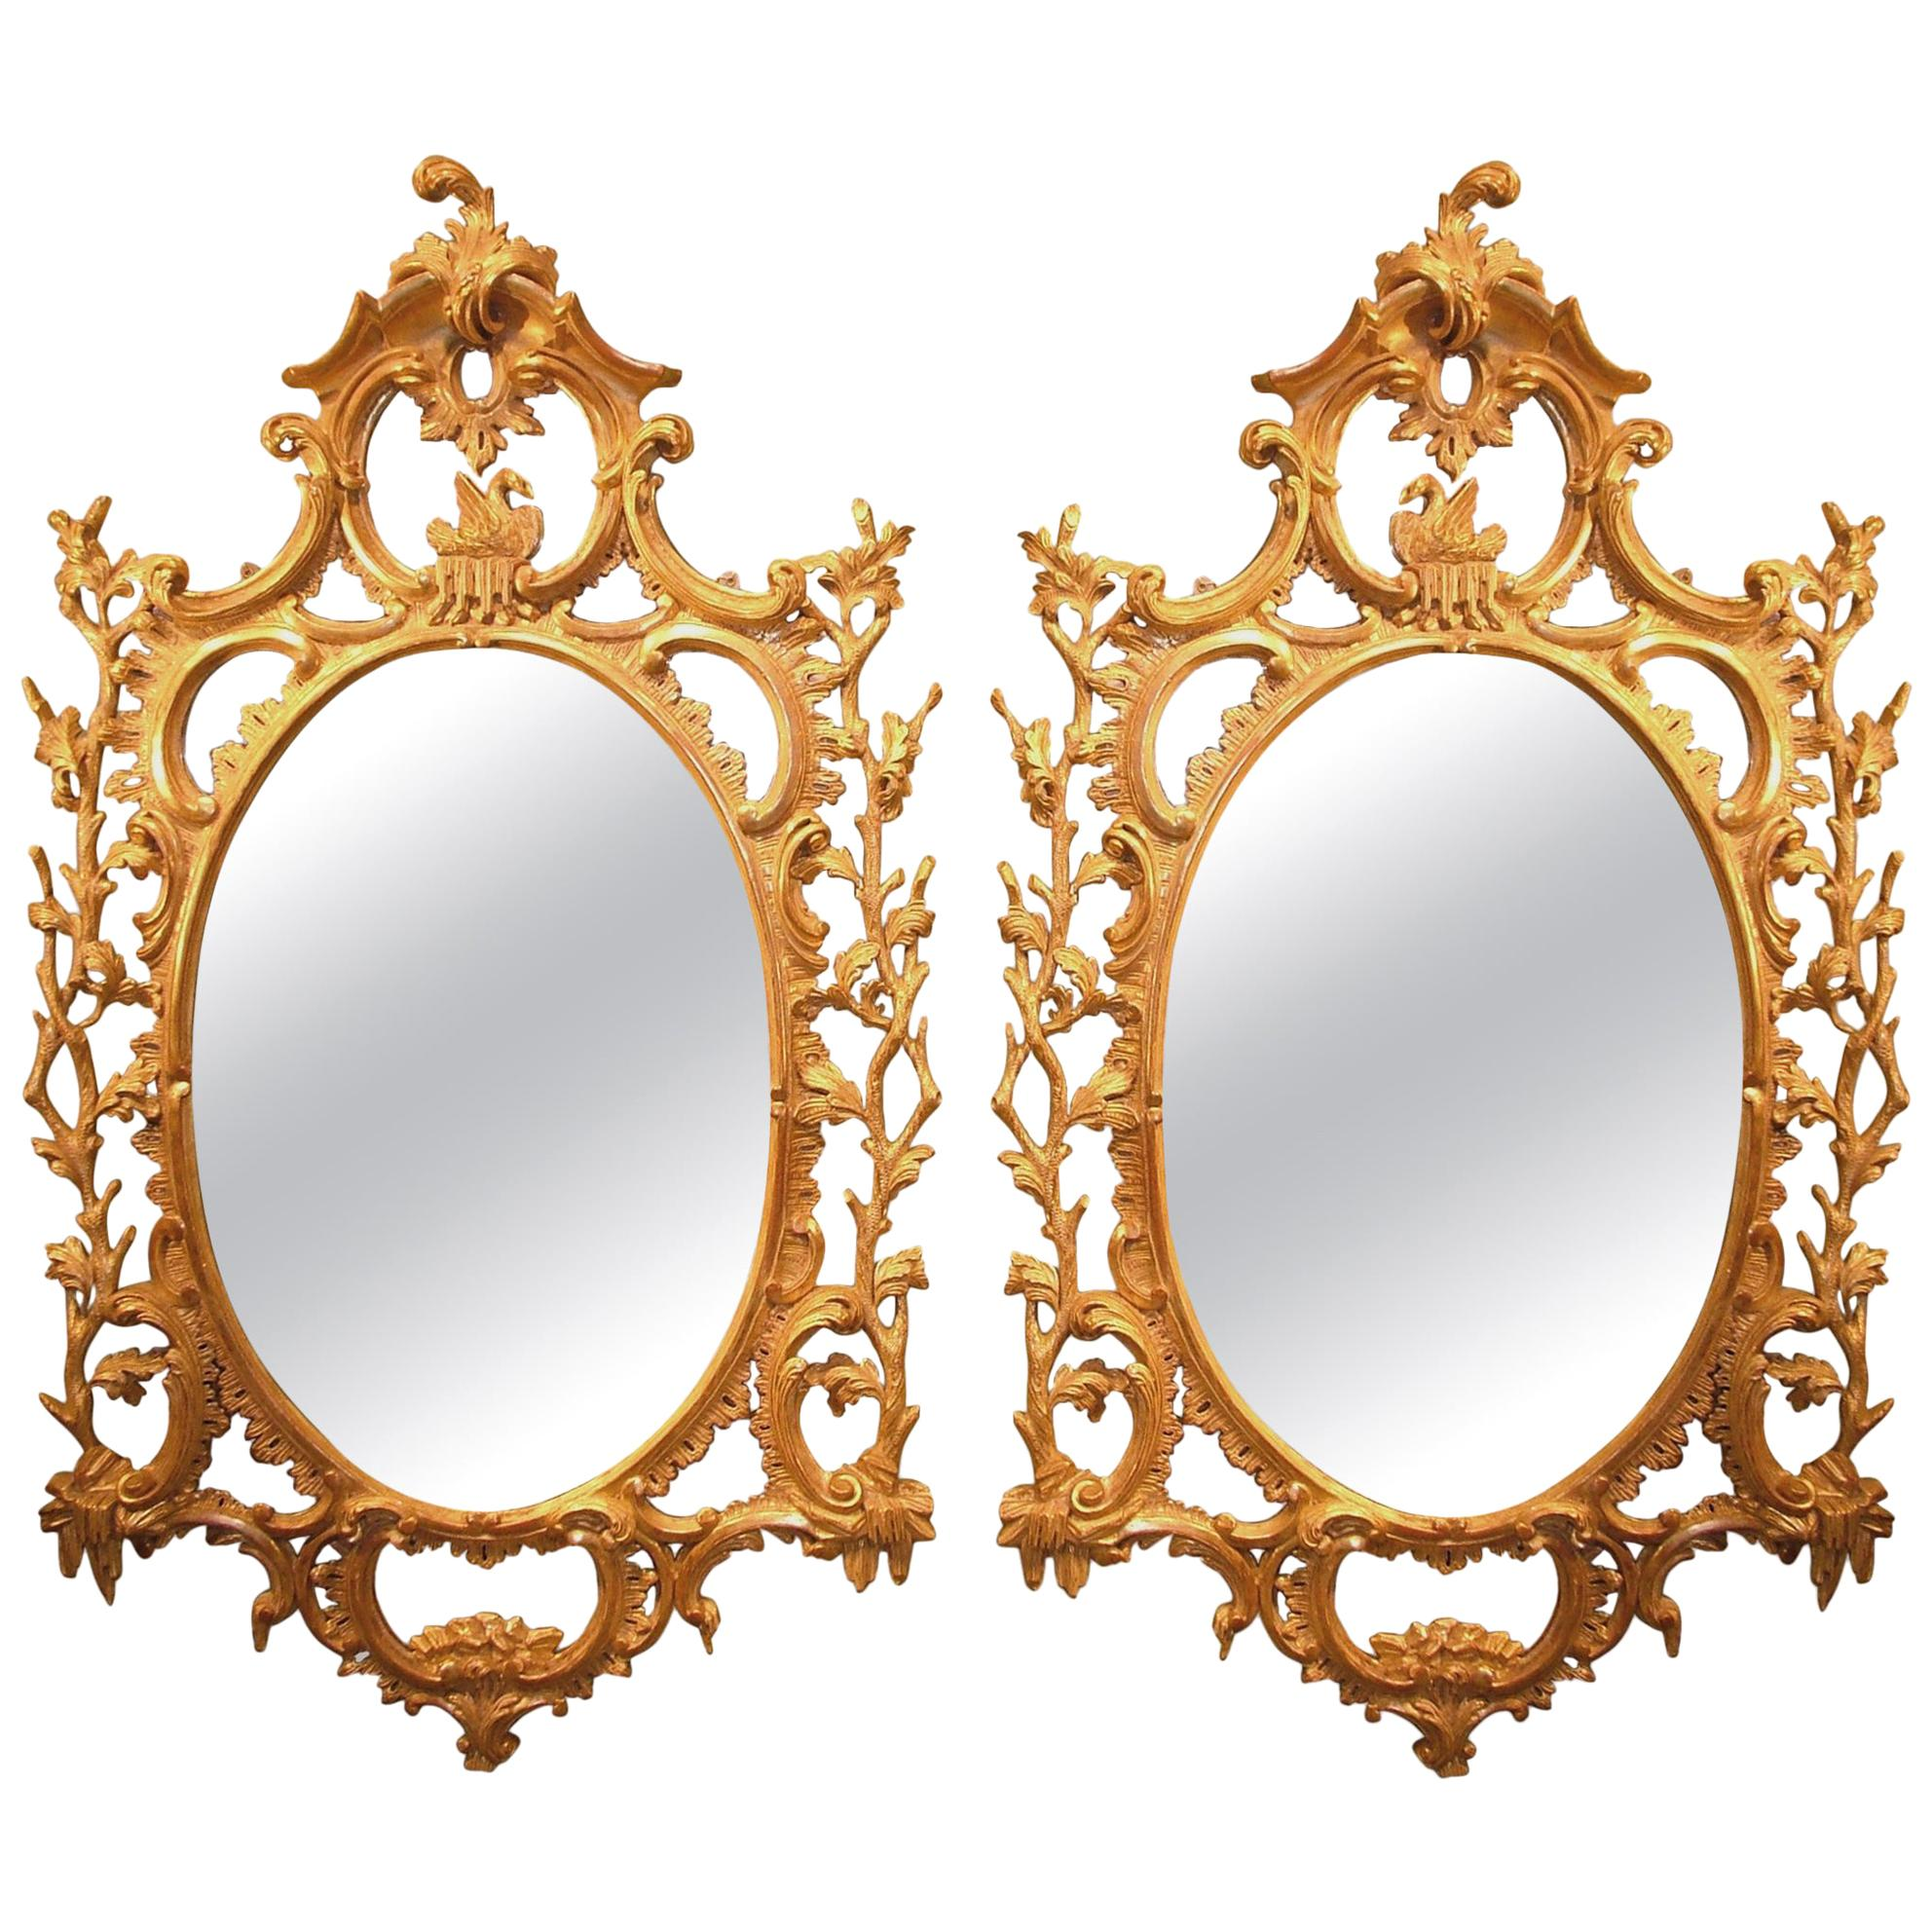 Pair of 18th Century Carved Oval Giltwood Mirrors